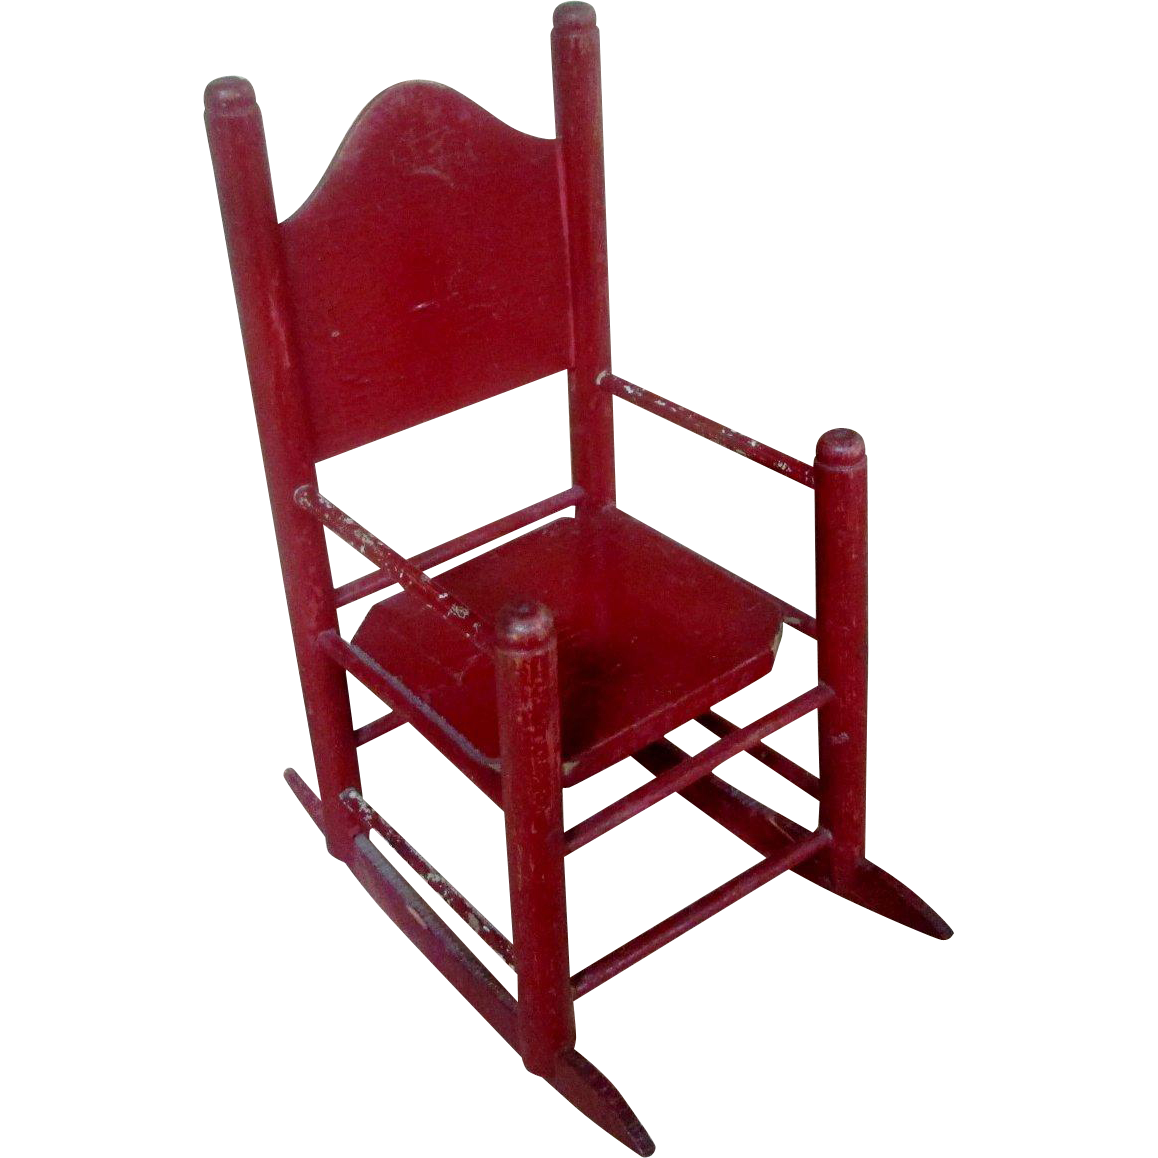 11 Antique Red Wooden Rocking Chair For Doll Or Bear From